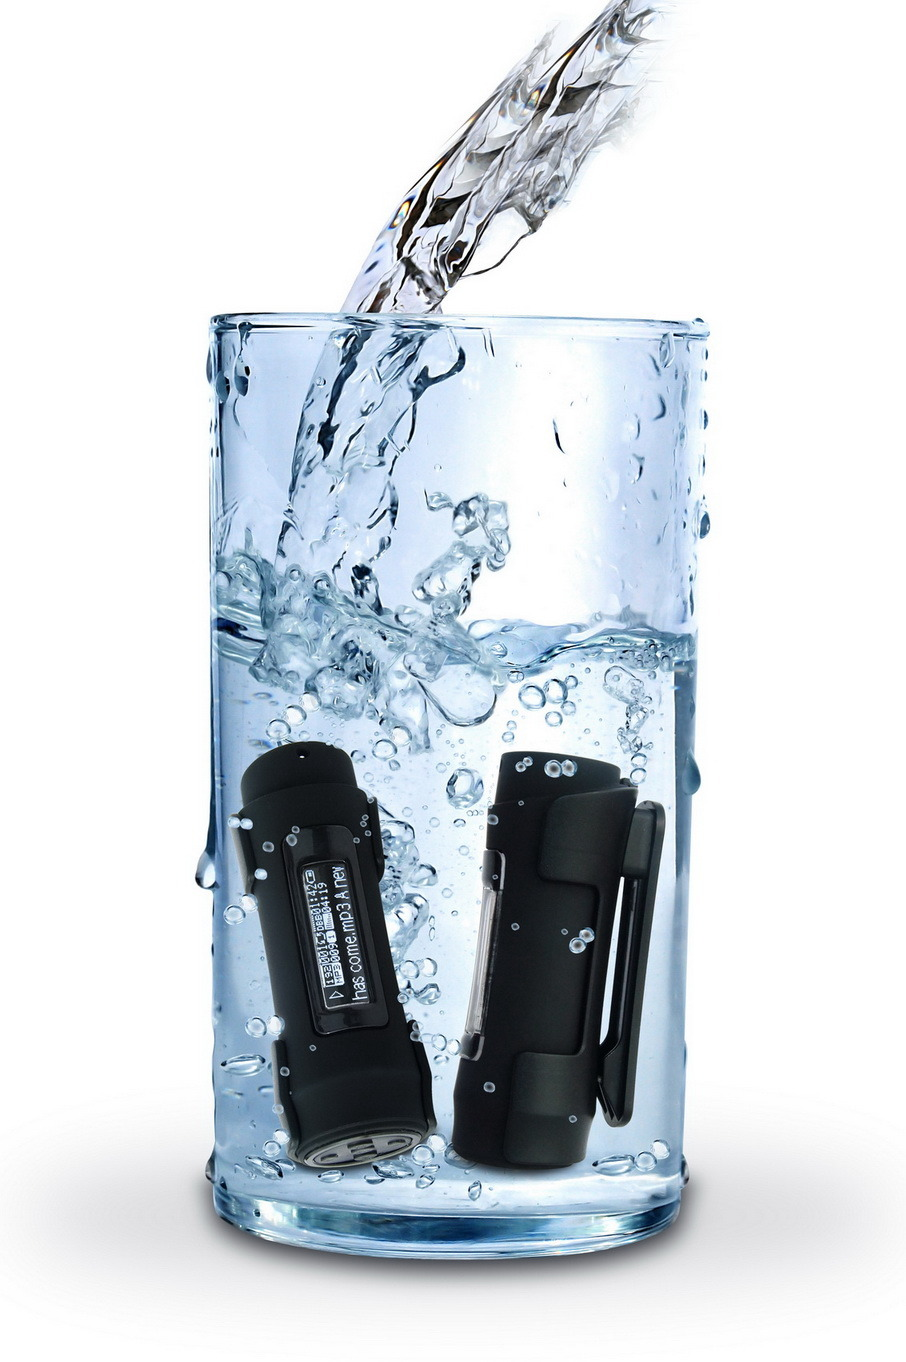 Waterproof MP3 Player